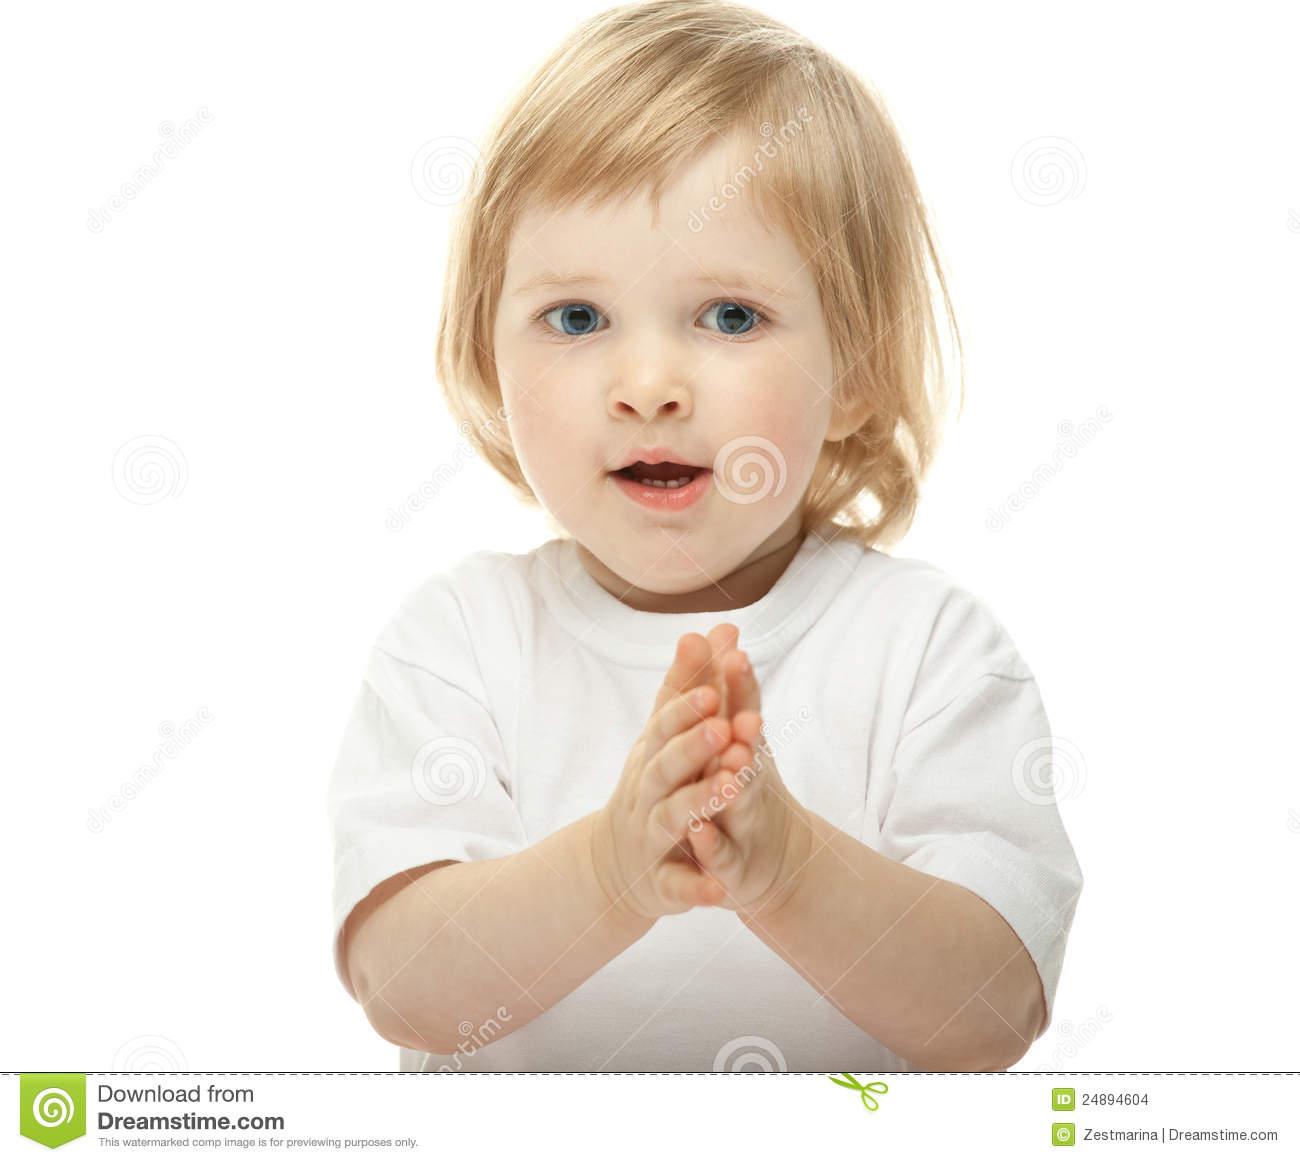 Cute Baby Girl Clapping Her Hands Stock Images - Image: 24894604